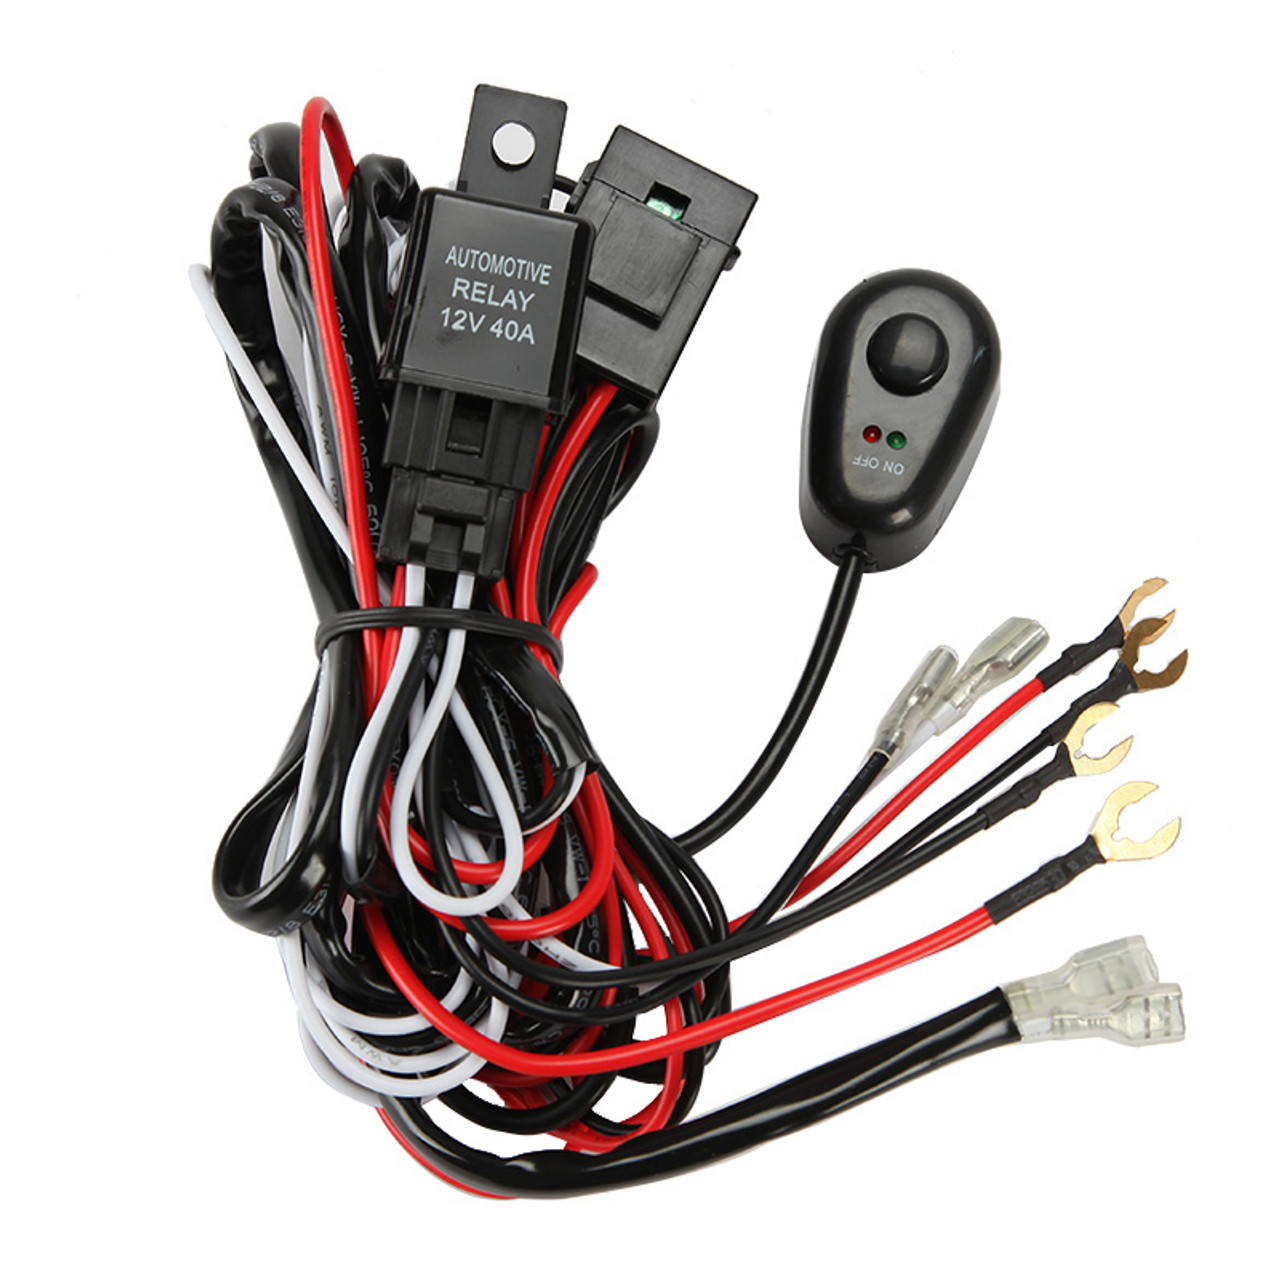 12V 40A LED Light Bar Wiring Harness Kit (Dual Lights) - 4x4TruckLEDs.com4x4TruckLEDs.com